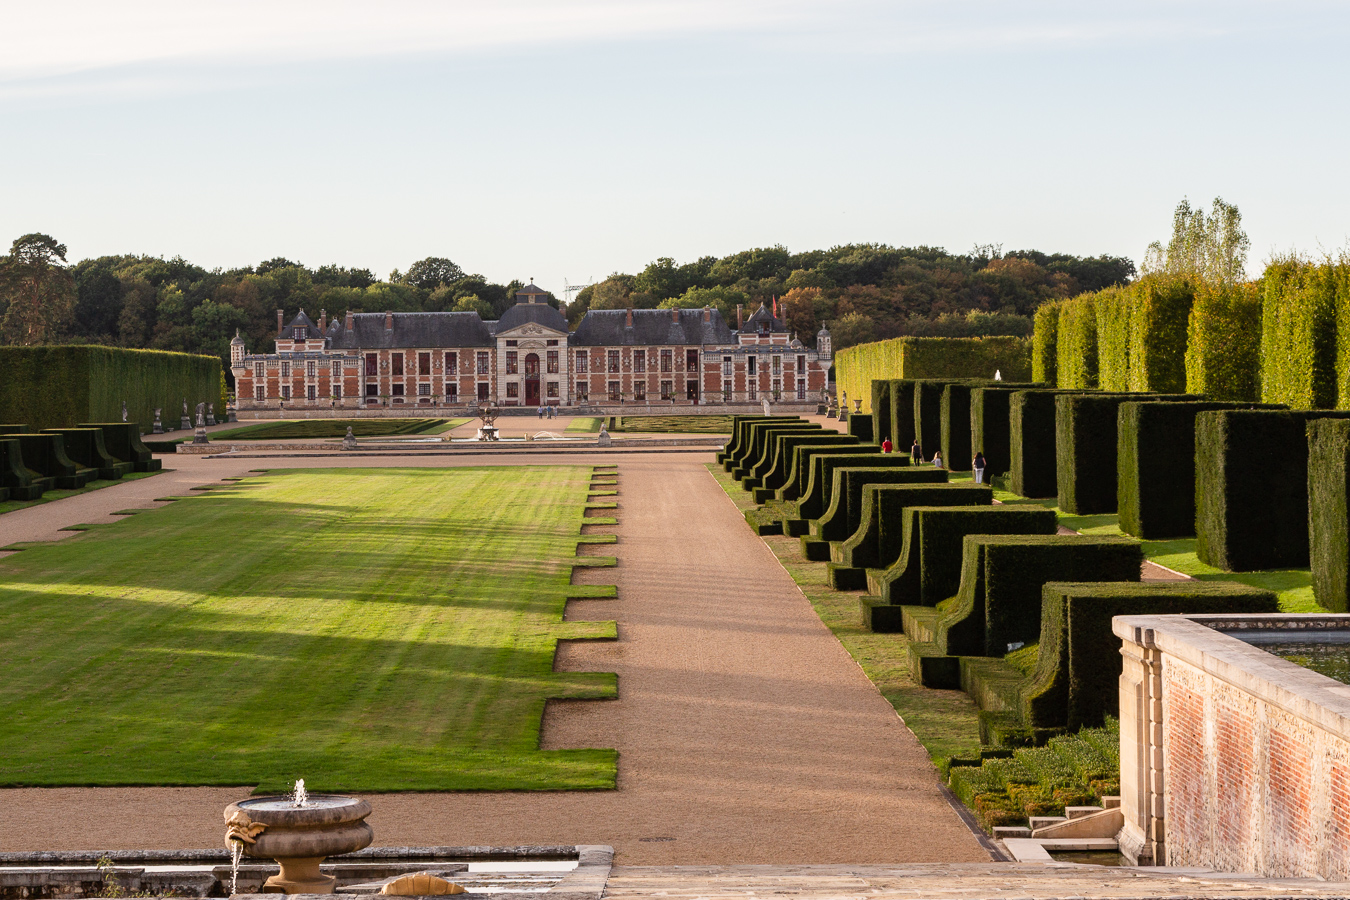 View of the Chateau du Champ de Bataille from the Great Axis, Normandy, France.